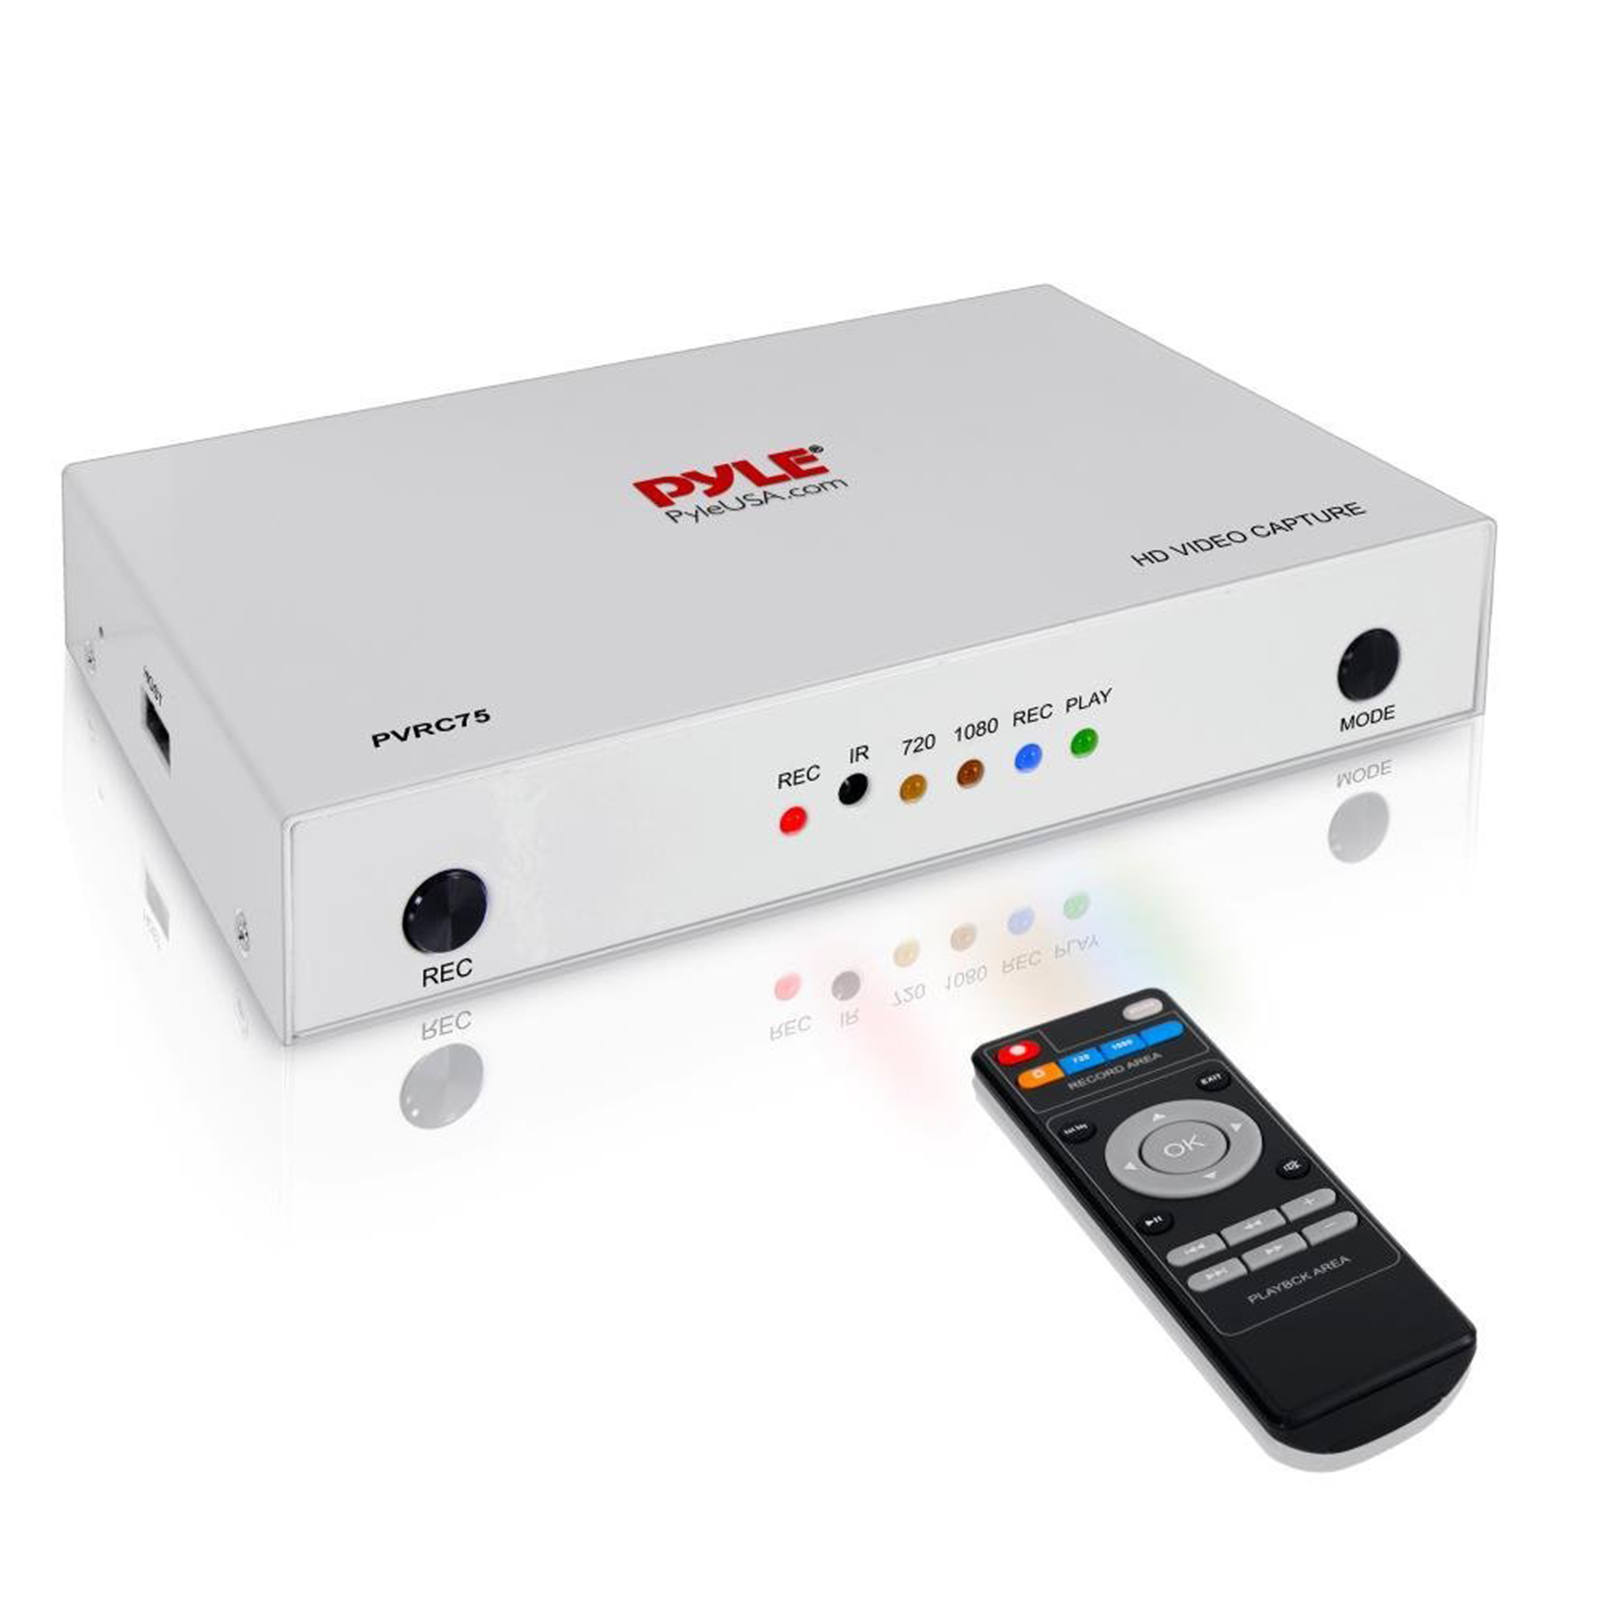 Pyle Video Game Capture Card - AV Recorder Converter, HDMI Support, Full HD 1080P Media File Creation System with Audio For USB, SD, PC, DVD, PS4, PS3, XBox One, XBox 360 and Wii